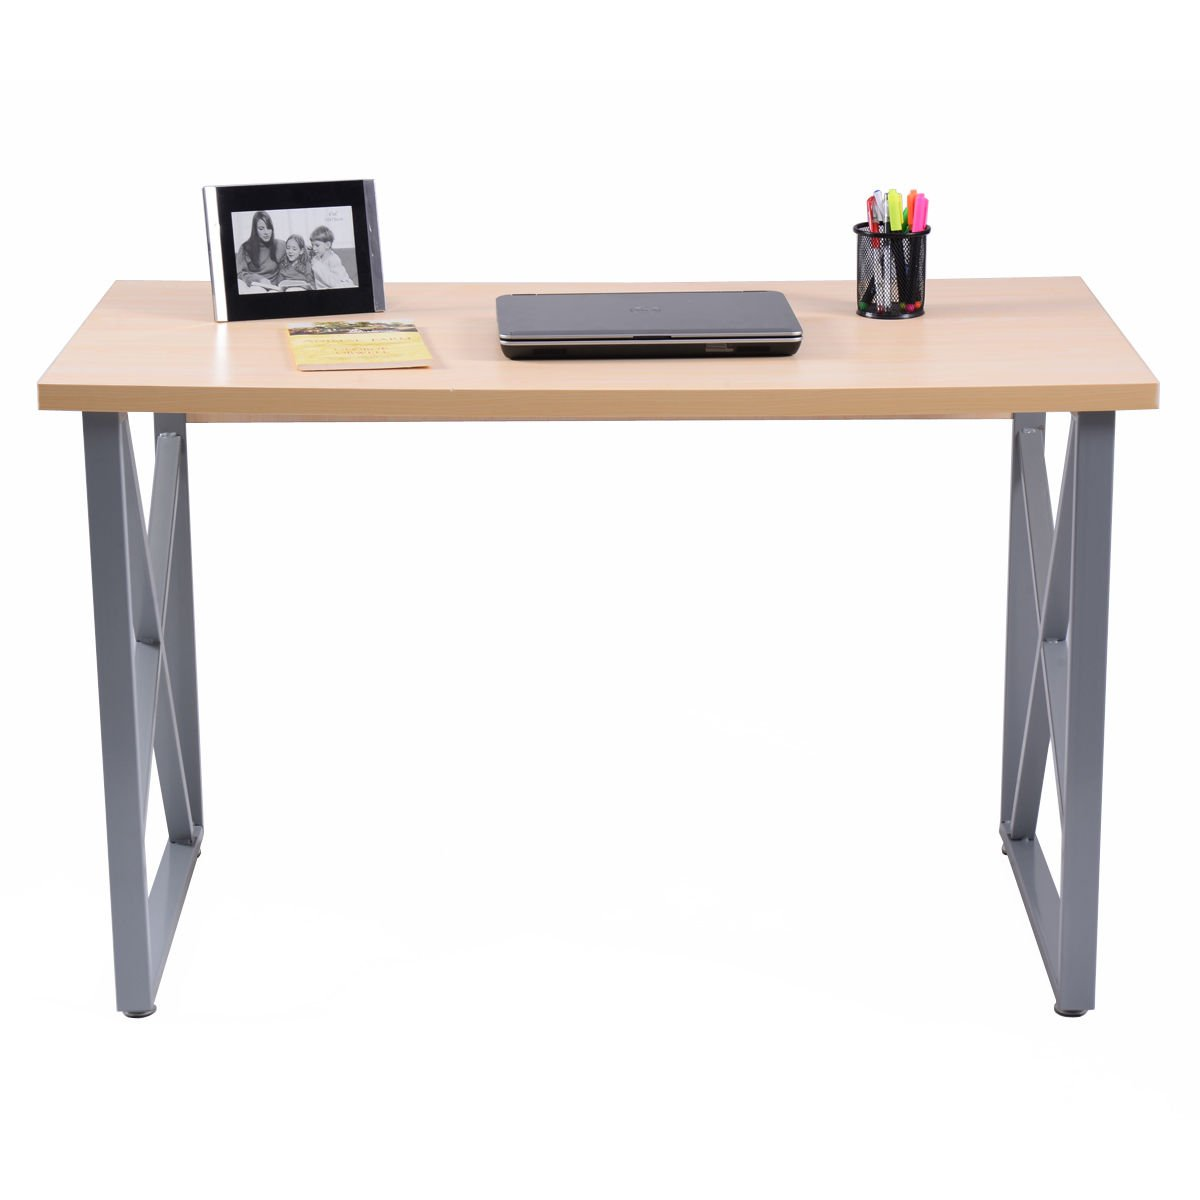 home office computer desk furniture. Amazon.com: CHEFJOY Computer Desk PC Laptop Table Writing Study Workstation Home Office Furniture: Kitchen \u0026 Dining Furniture S